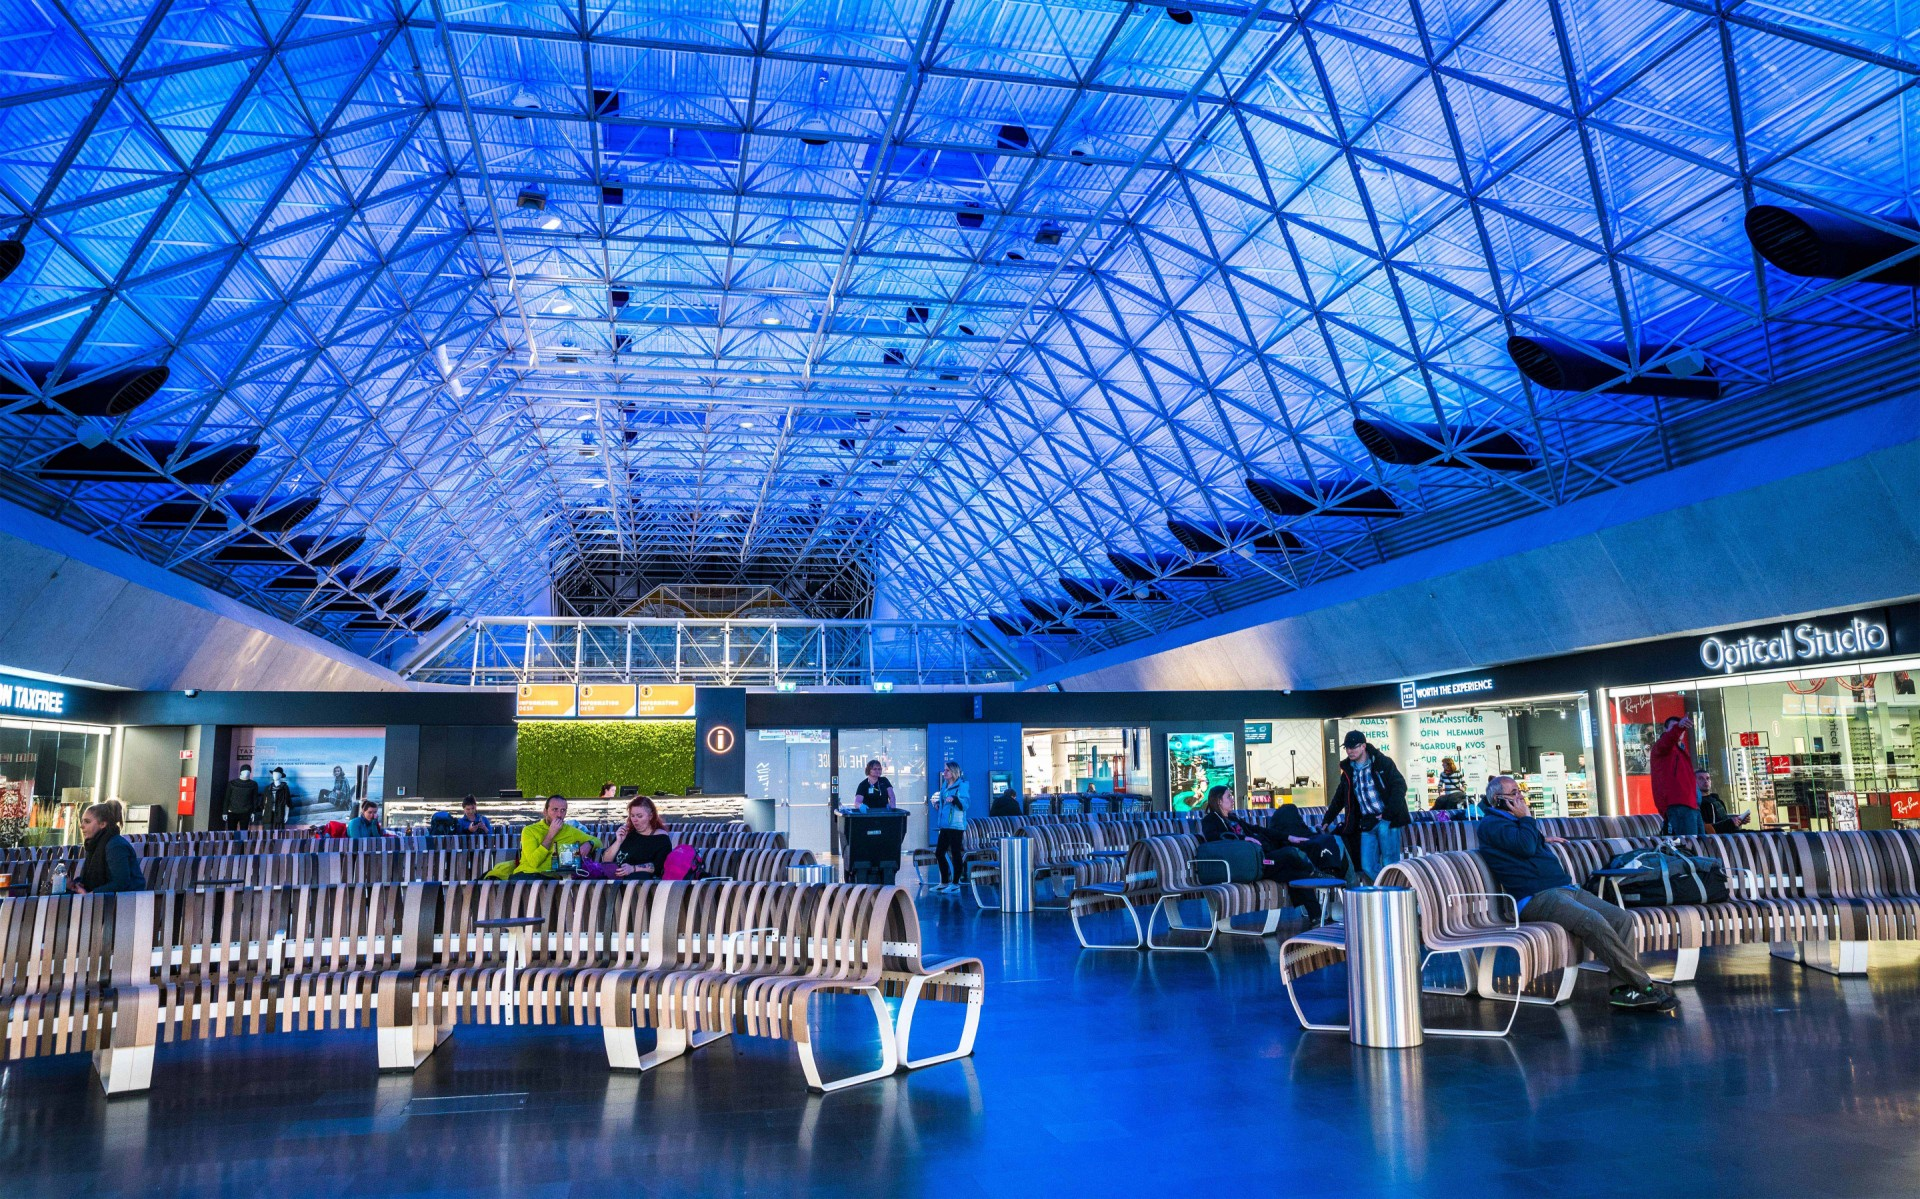 Lumencove RGBW luminaires wash the spaceframe ceiling.